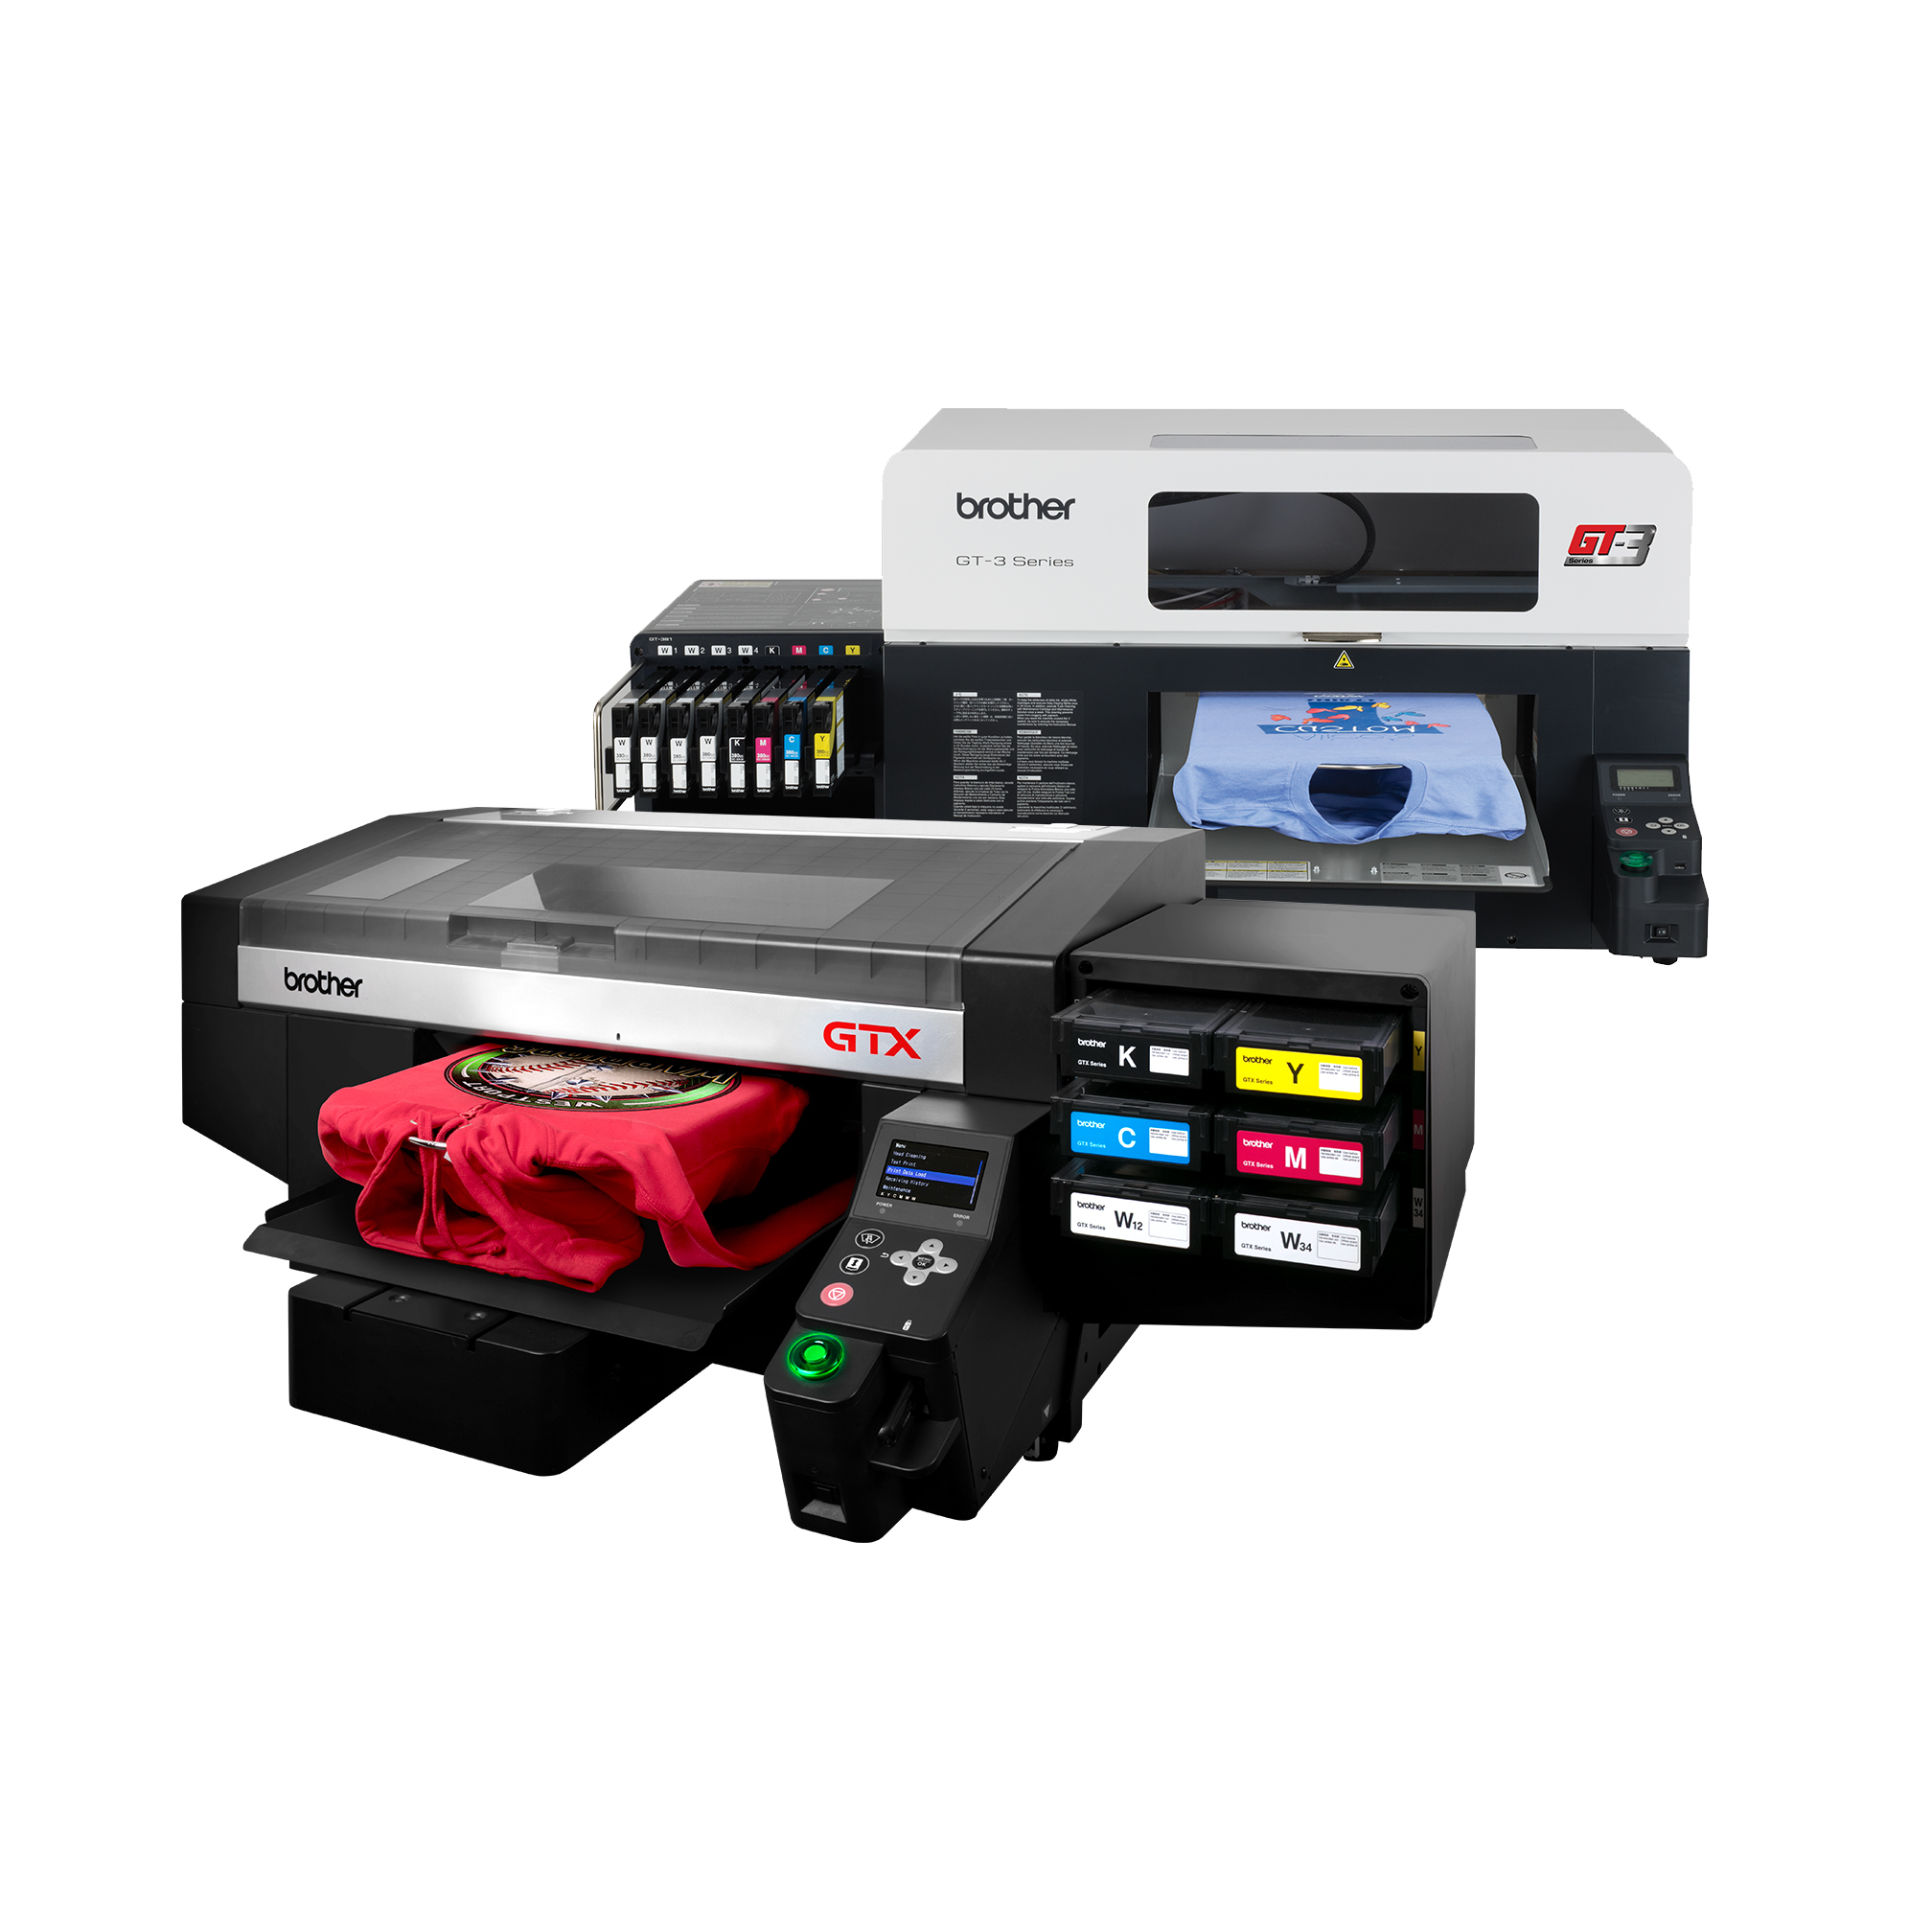 96b425092 Brother DTG Celebrates Production Of 10,000th Printer